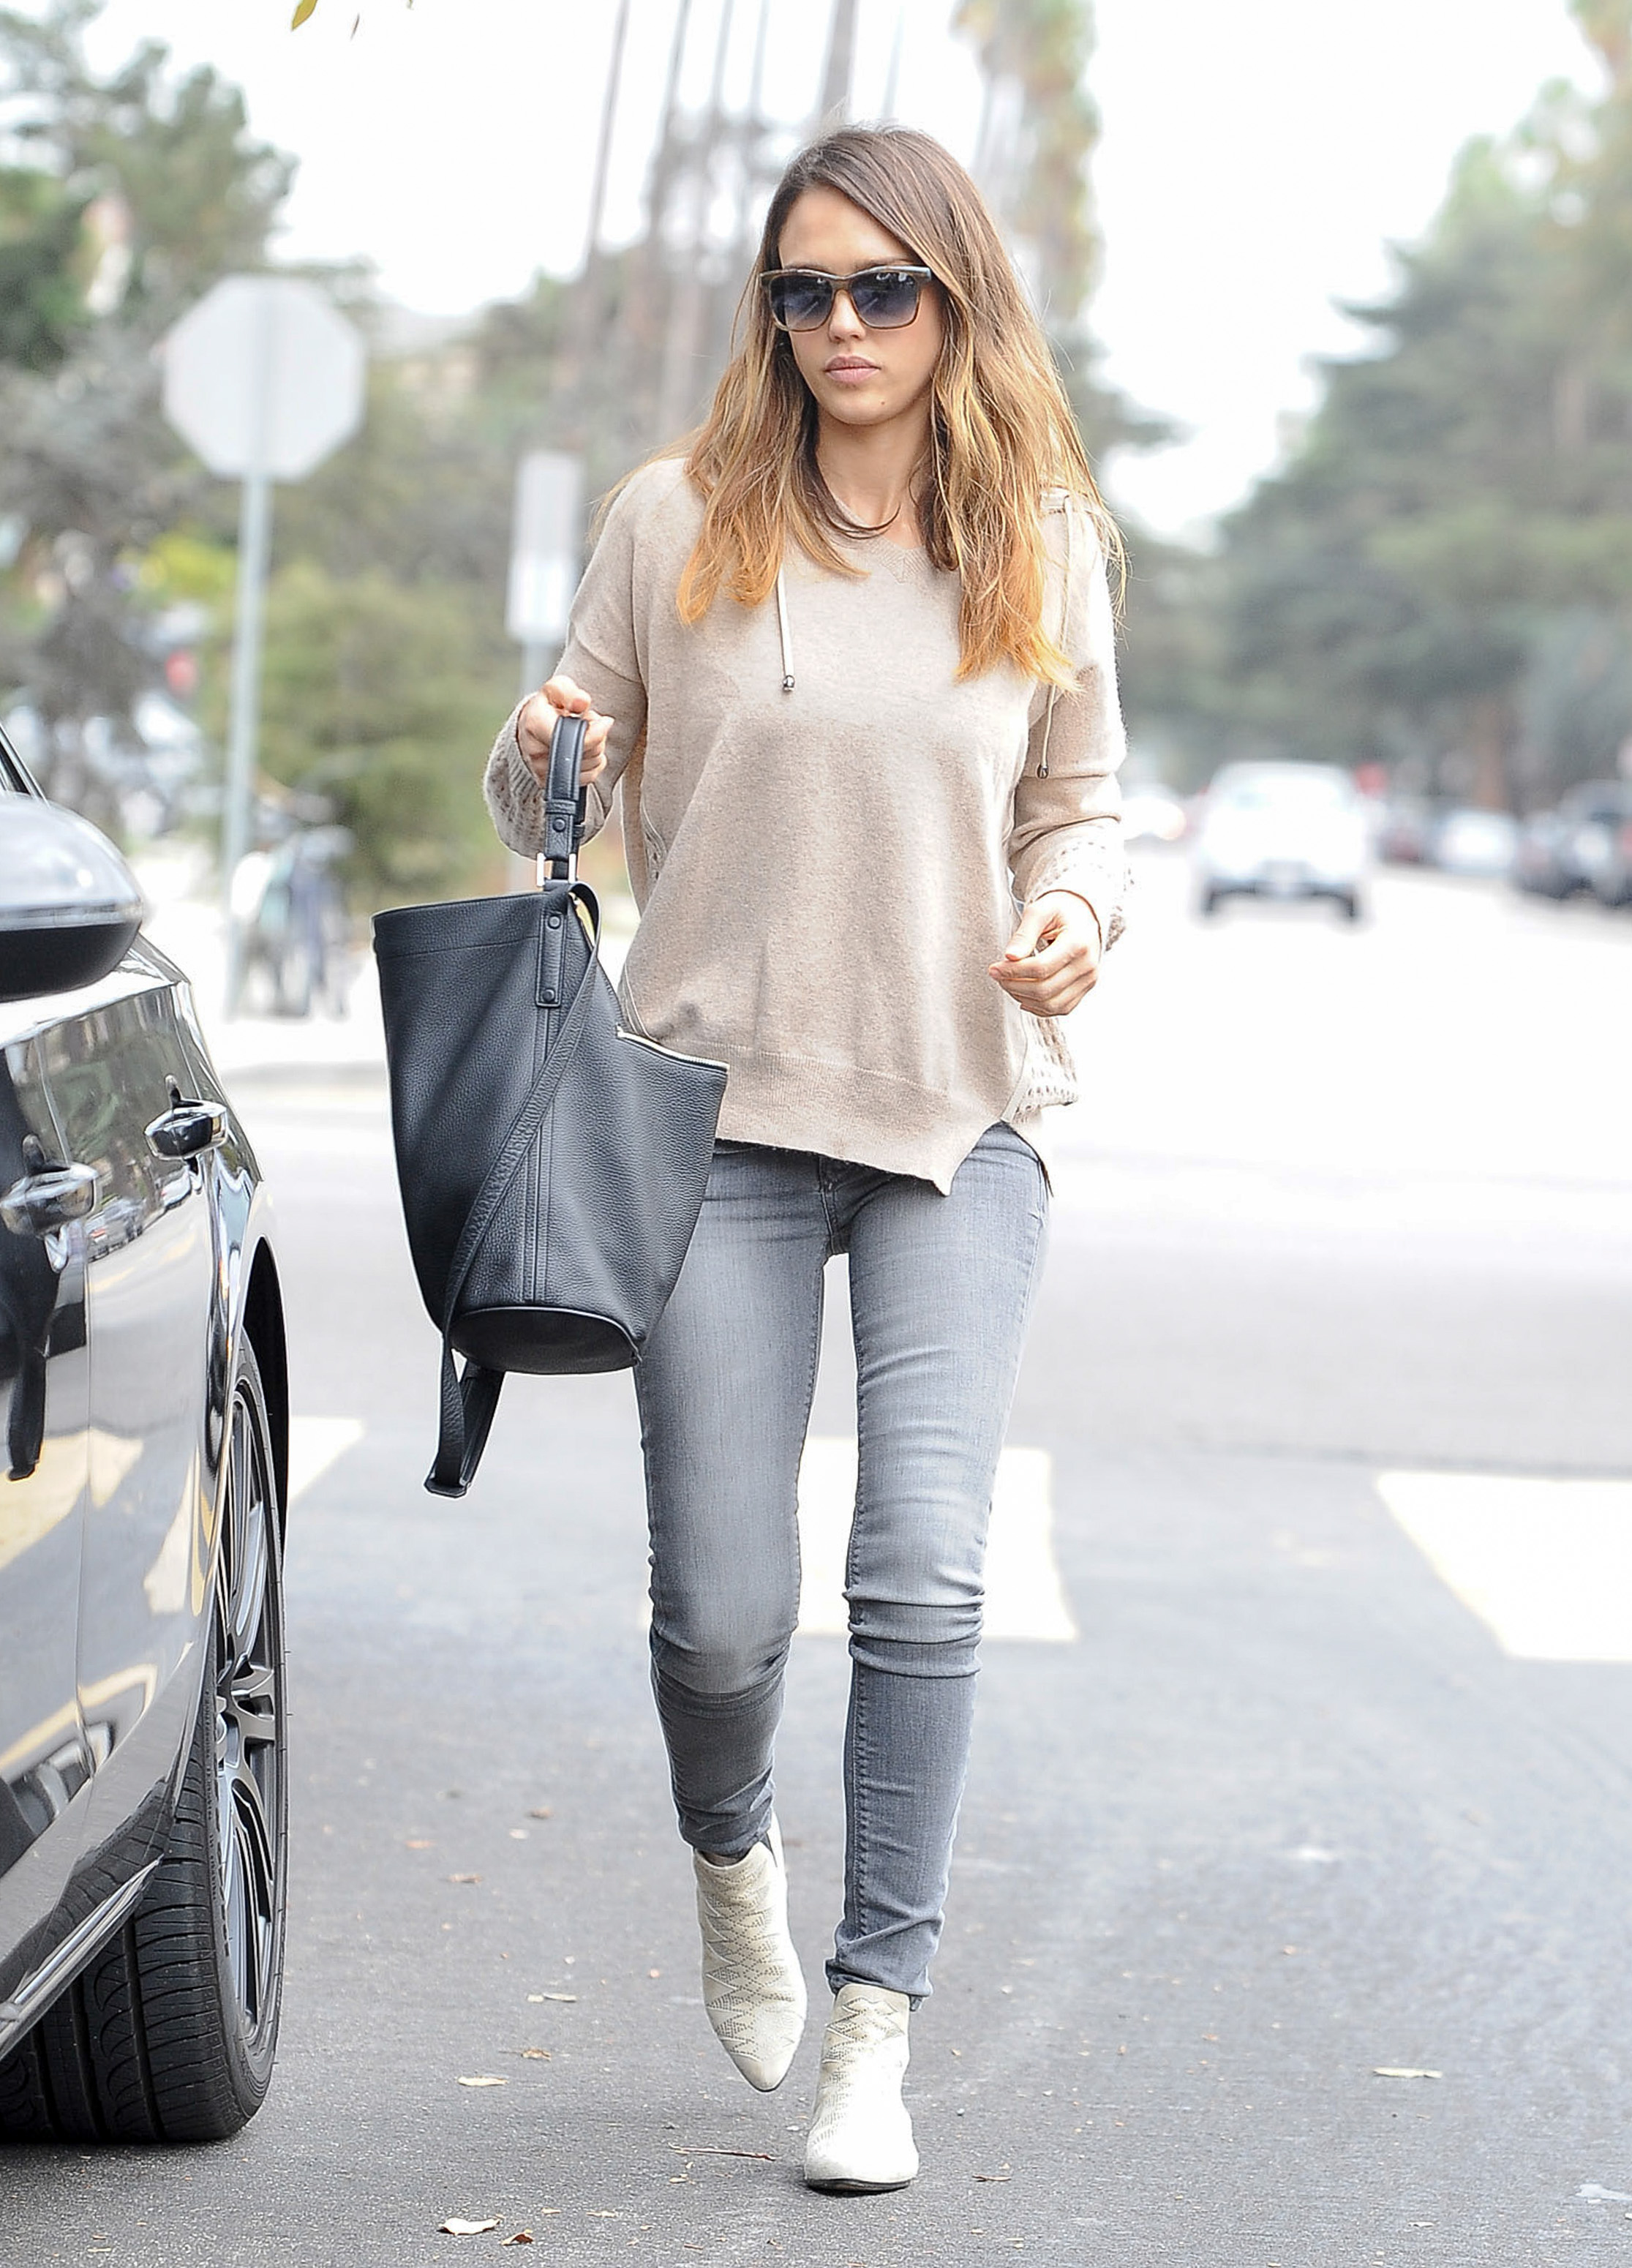 How to Dress Like Jessica Alba | Closetful of Clothes